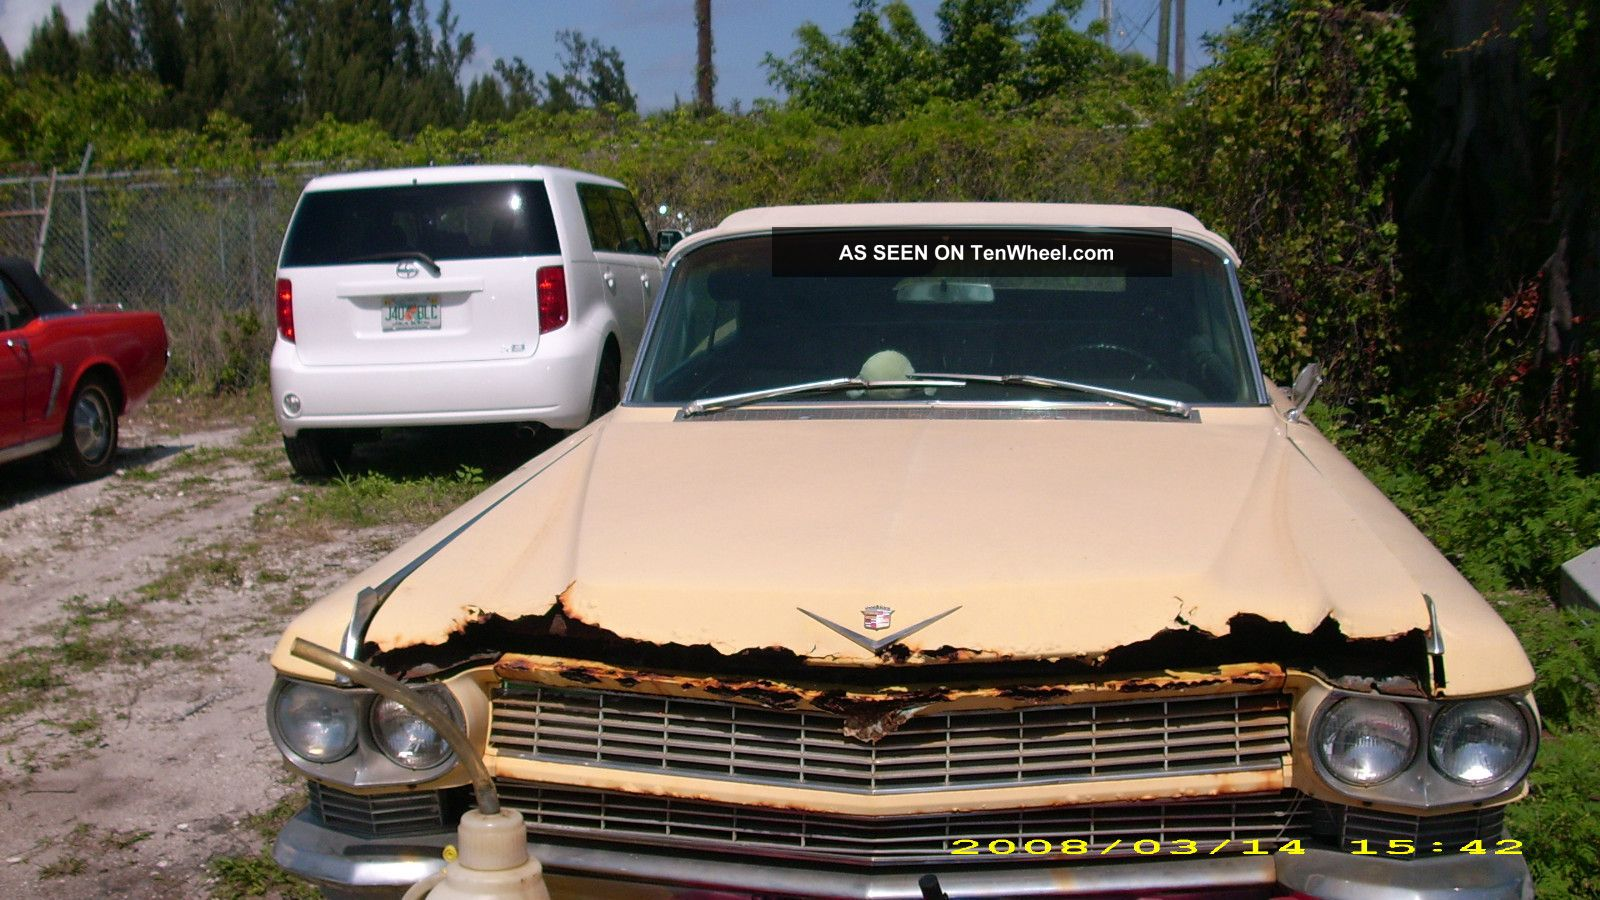 1964 Cadillac Yellow Color,  Engine, ,  Needs Body Work Make Offer Other photo